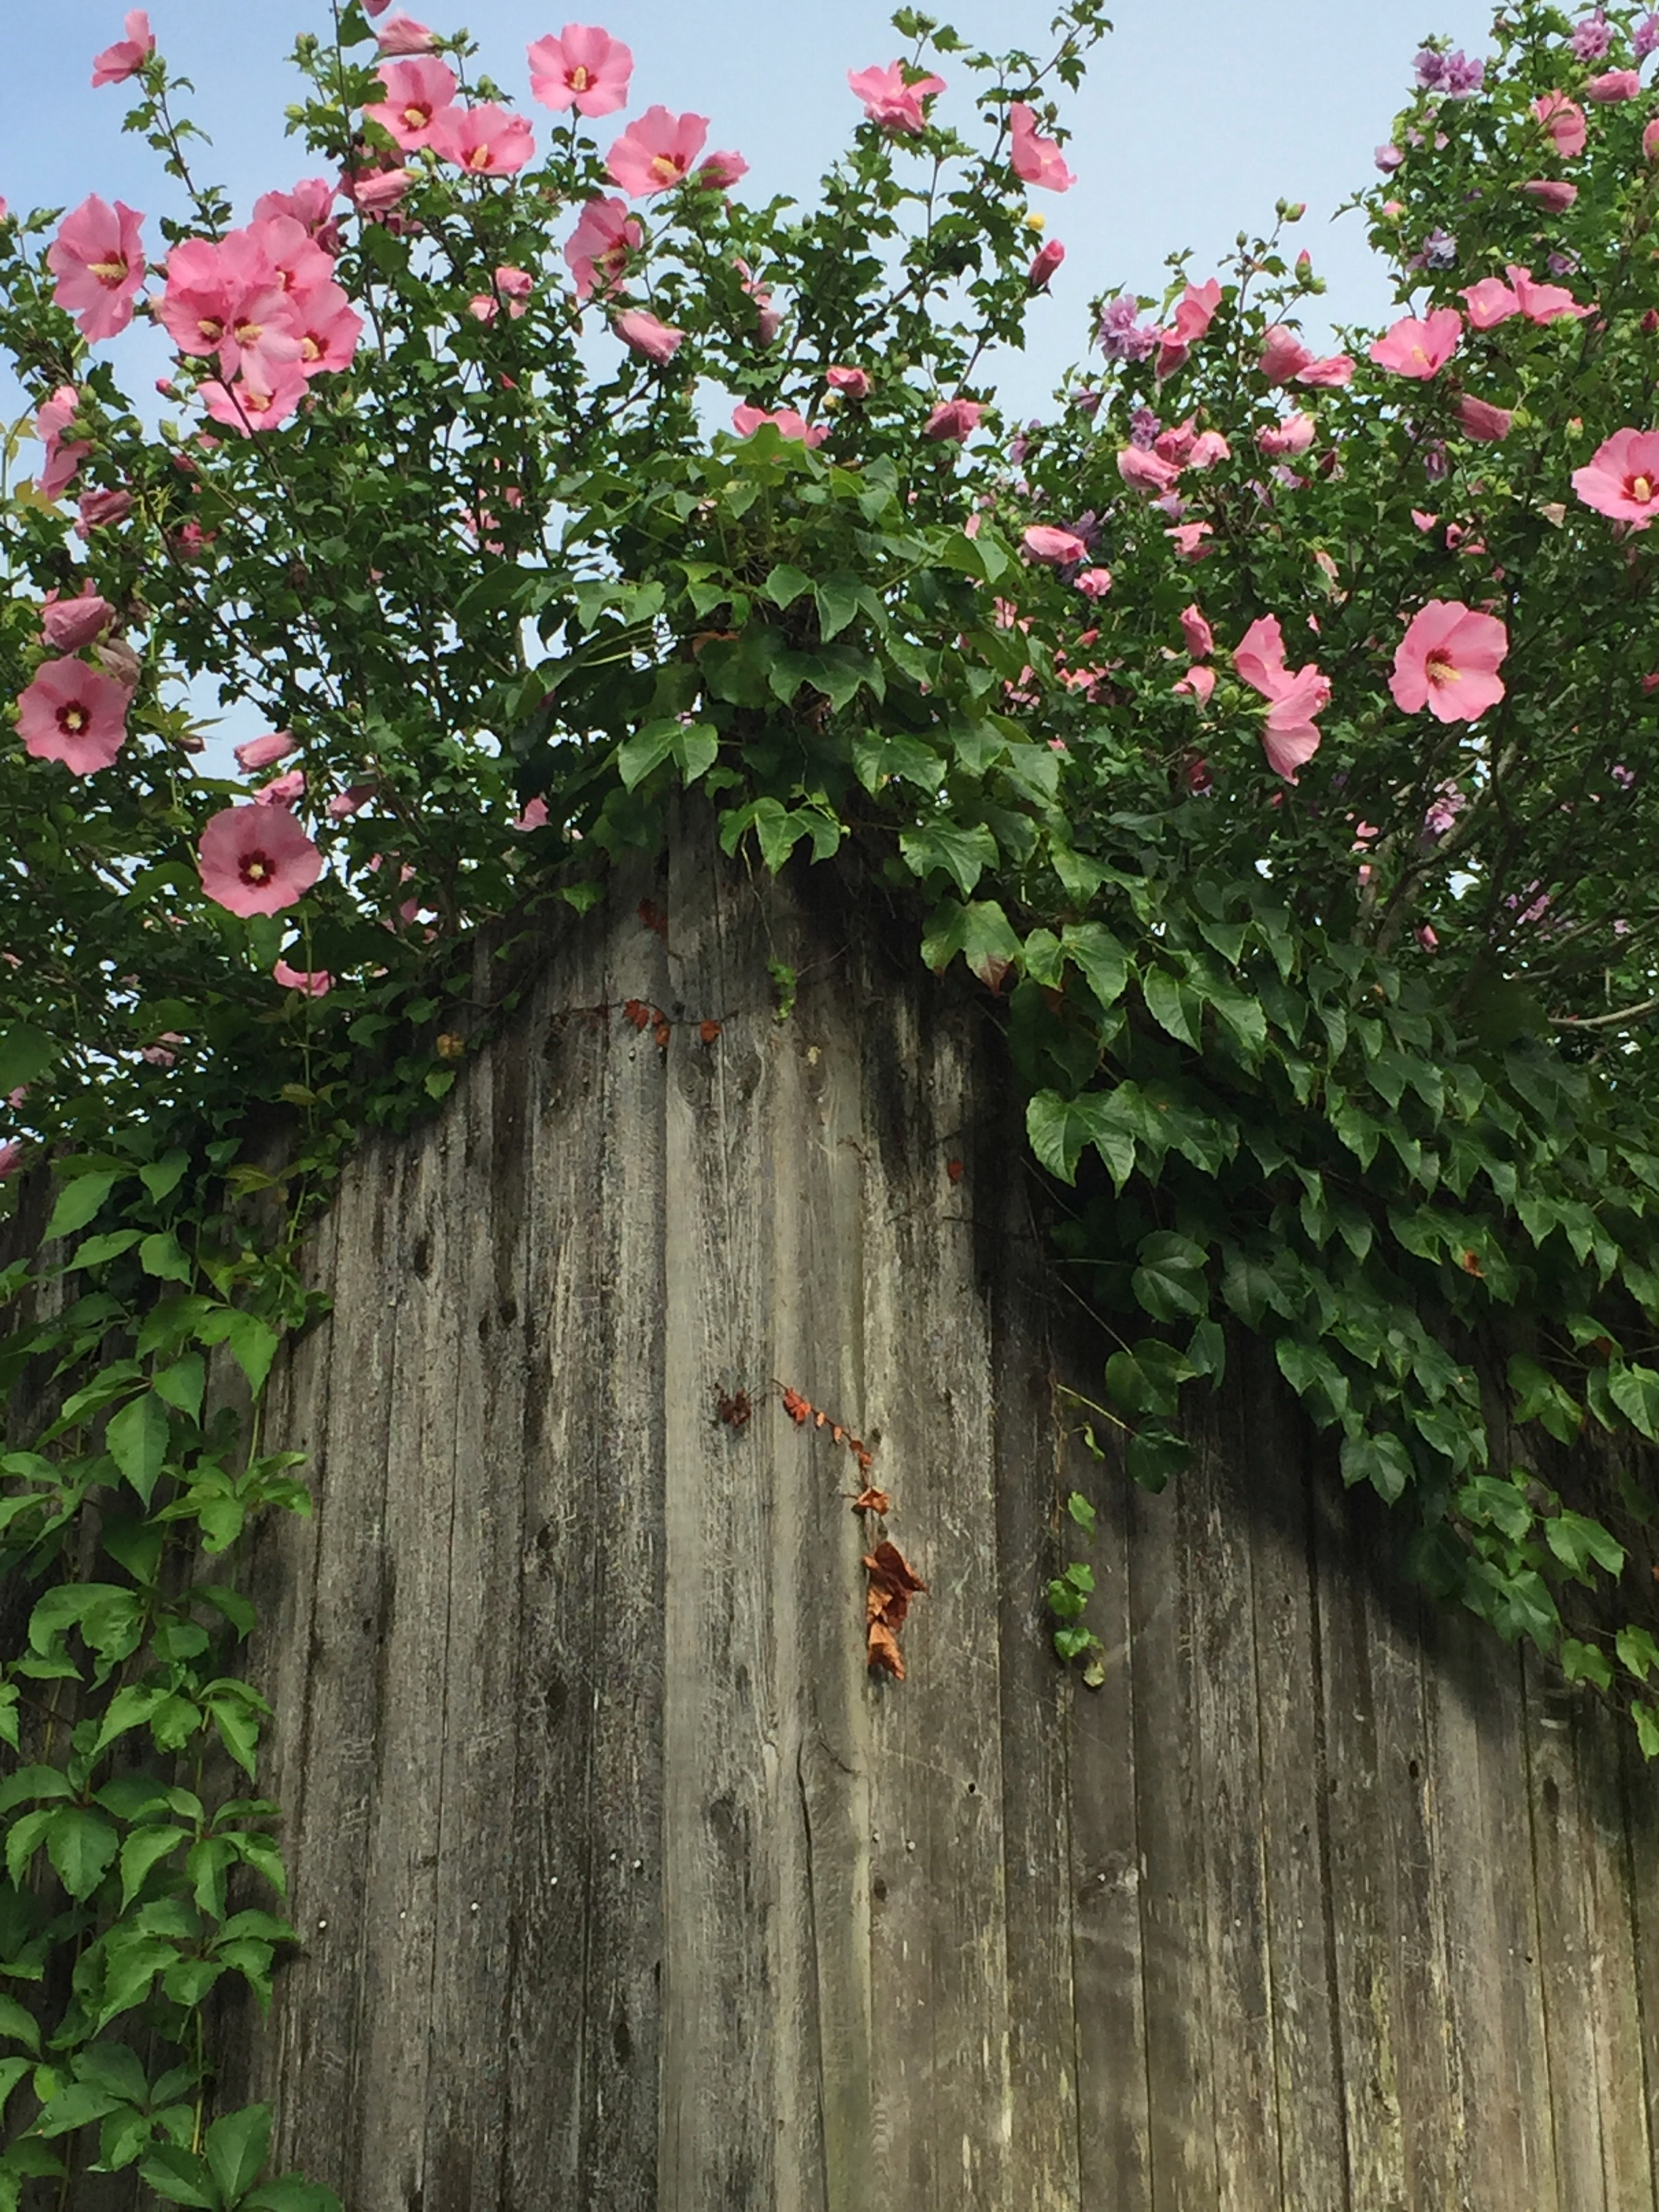 It's the Weekend, Number 68. Rose of Sharon looming high over a wood fence